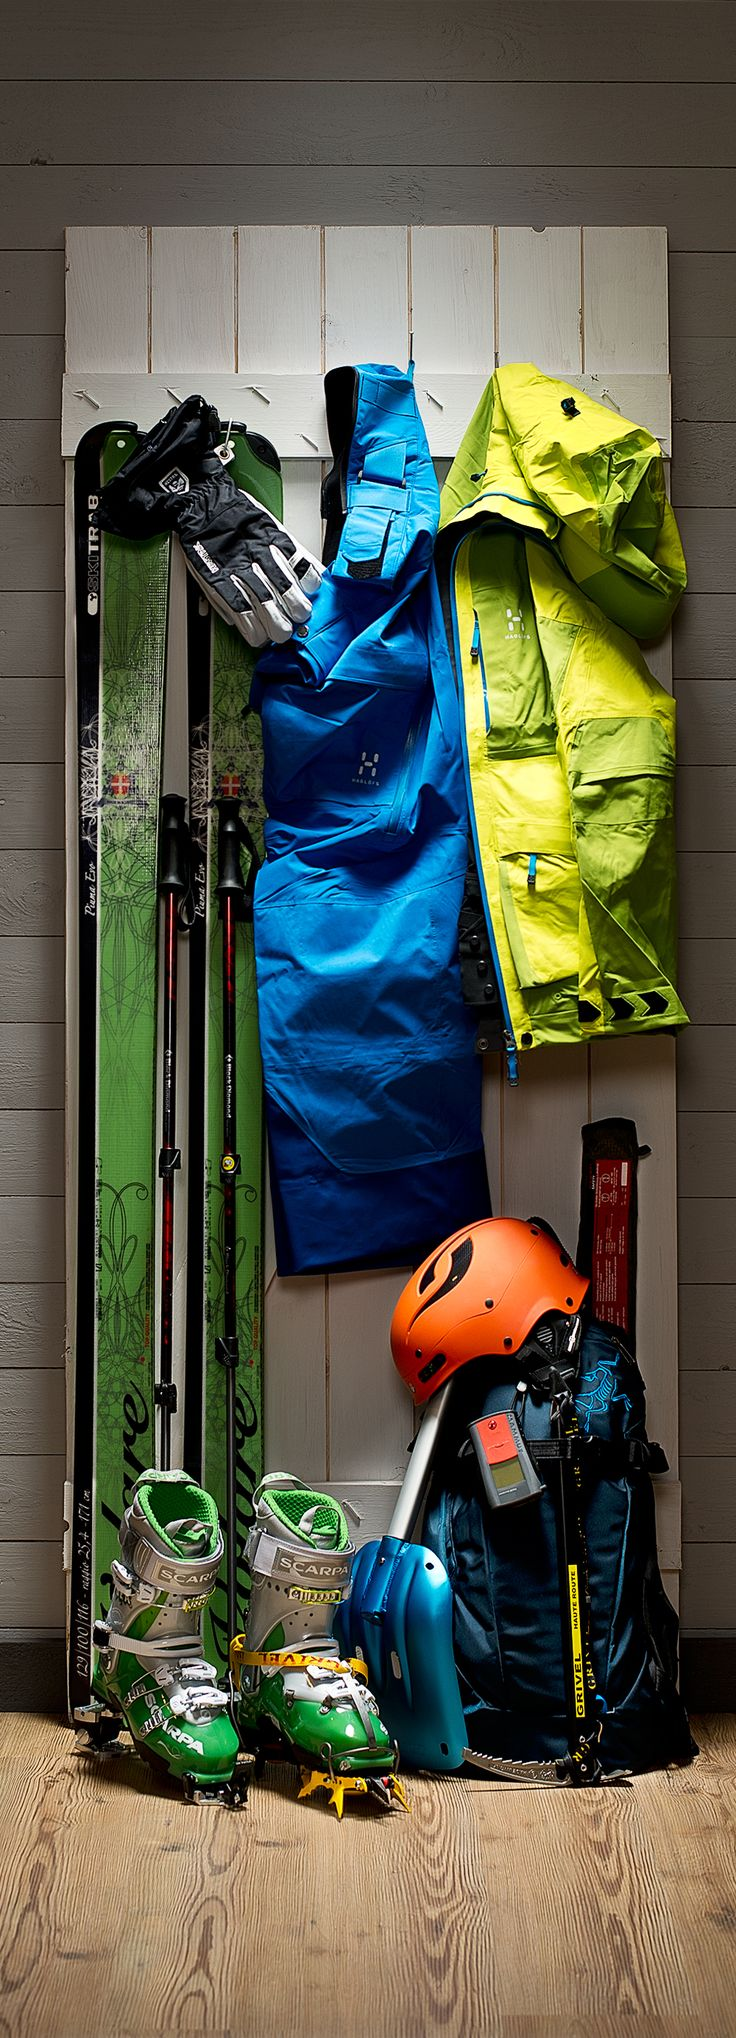 We have a new and increased range of ski mountaineering and cross country skiing equipment. Check it out! http://www.outnorth.com/product-group-eu/ski-touring-telemark.php